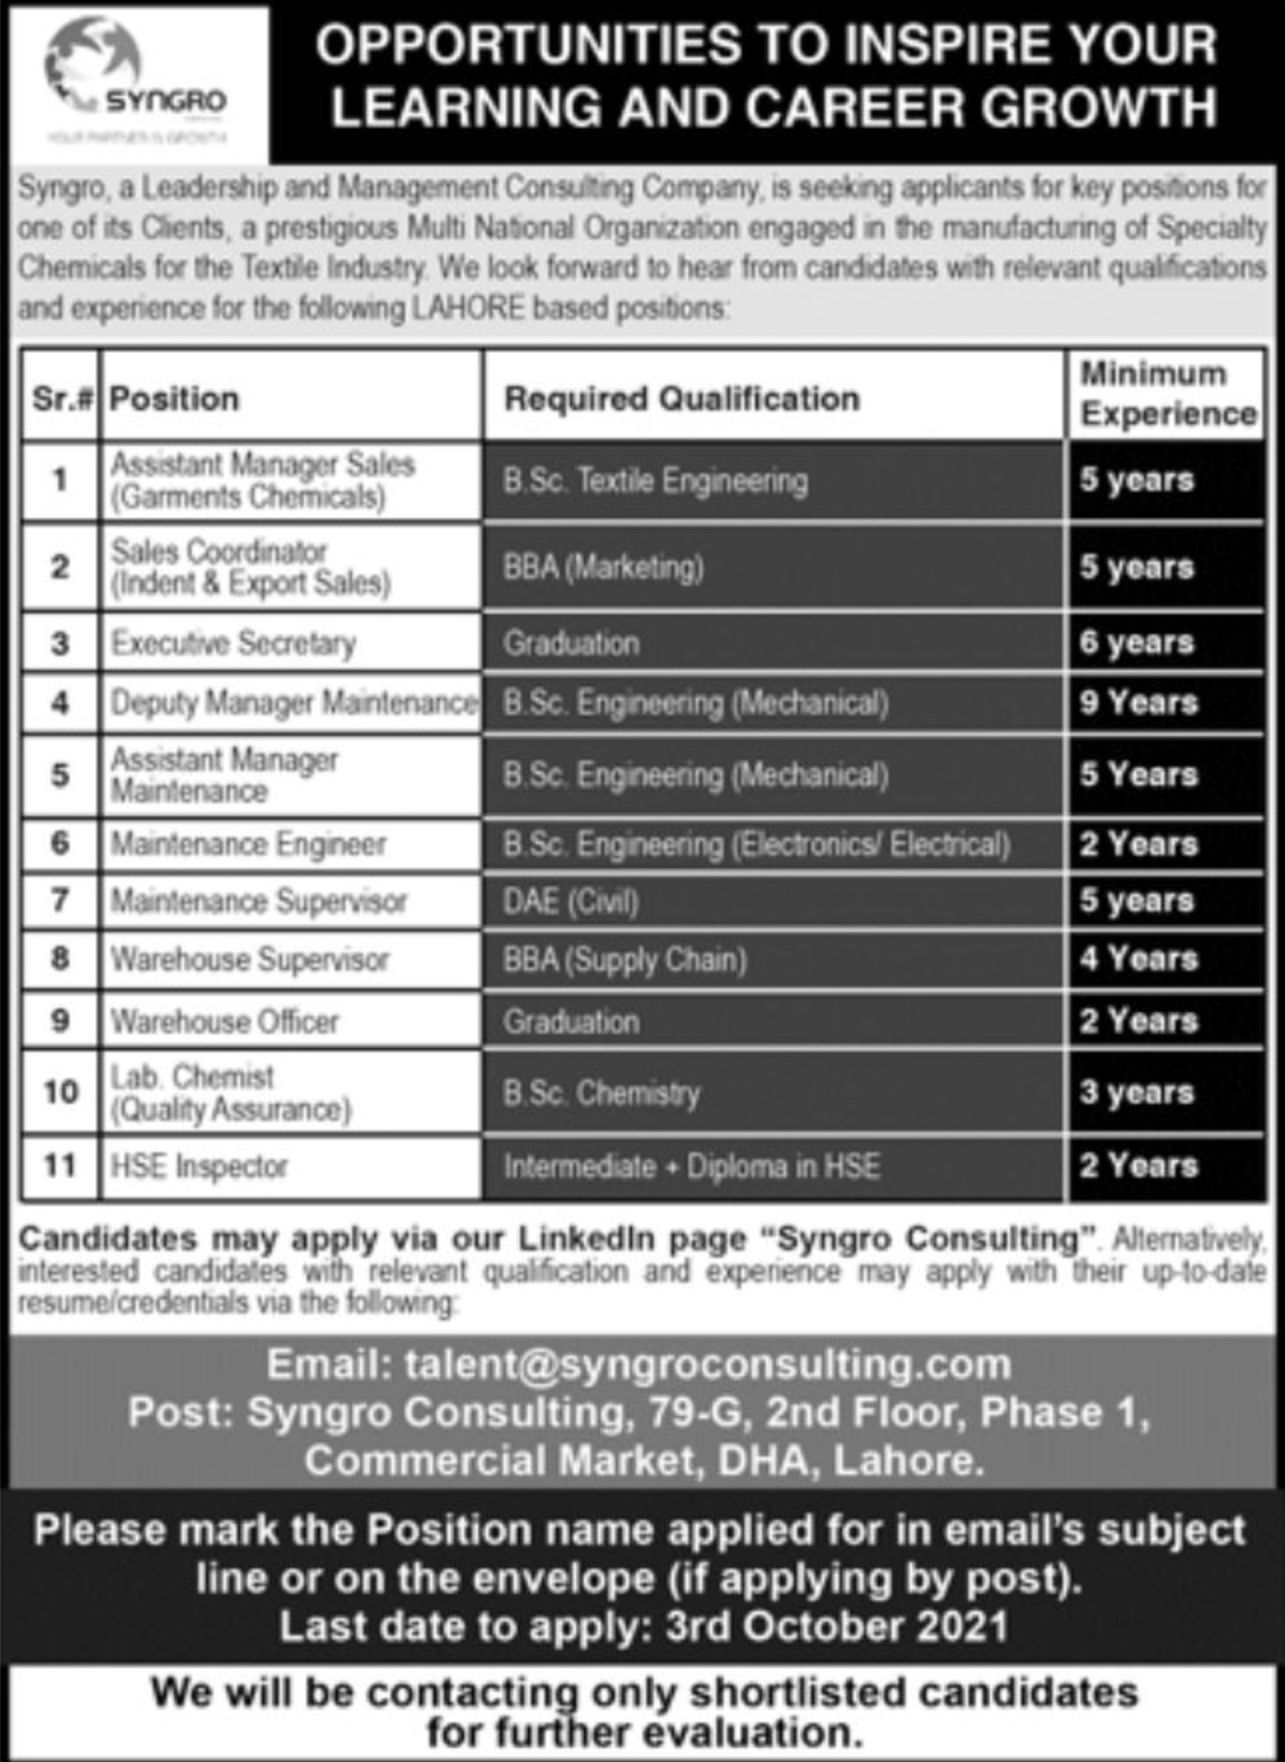 Syngro Leadership and Management Consulting Company Vacancies 2021 – Latest Jobs 3